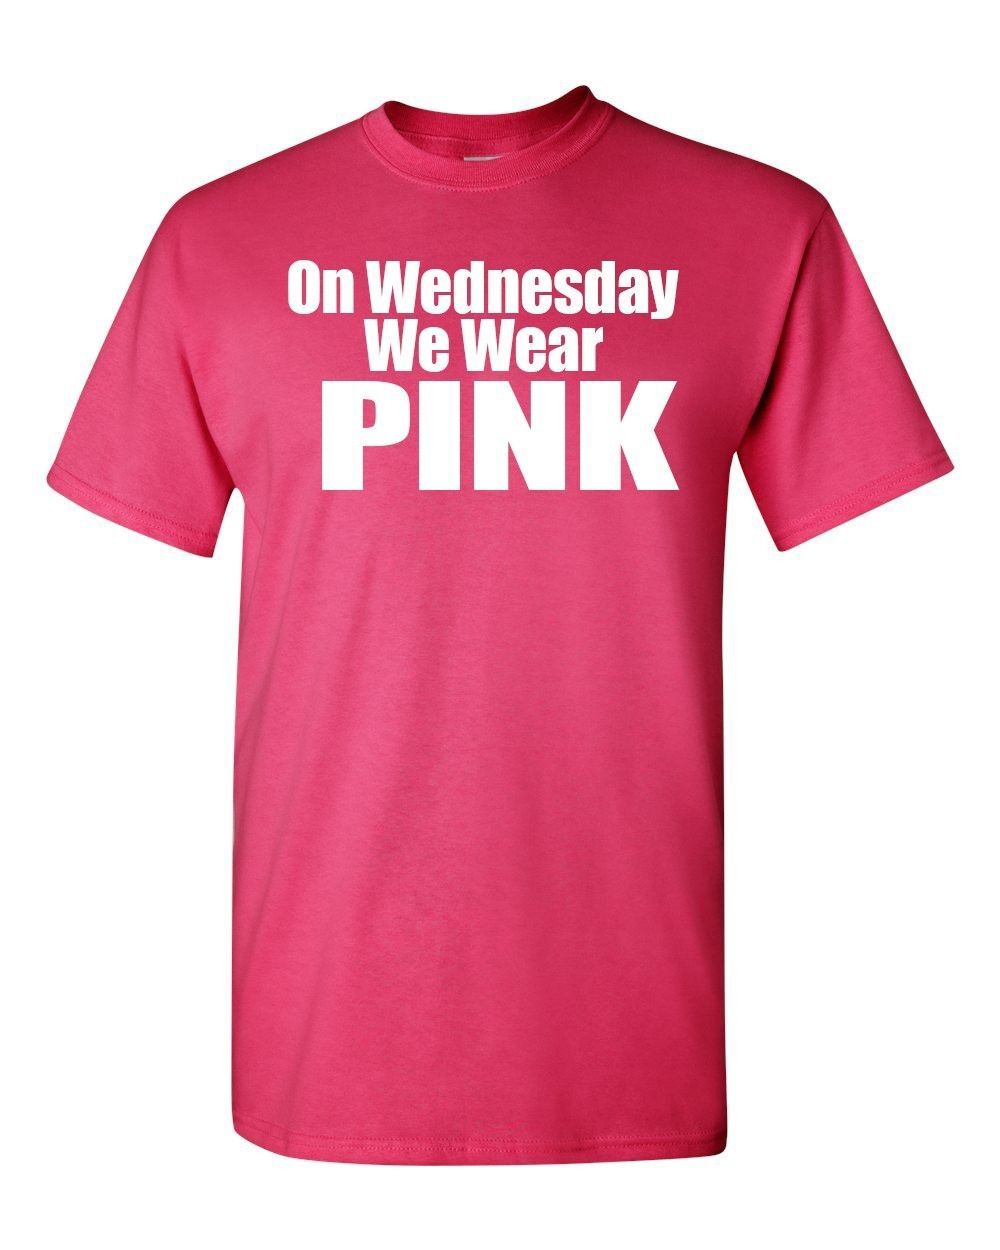 On Wednesdays We Wear Pink T Shirt On Wednesday We Wear P...